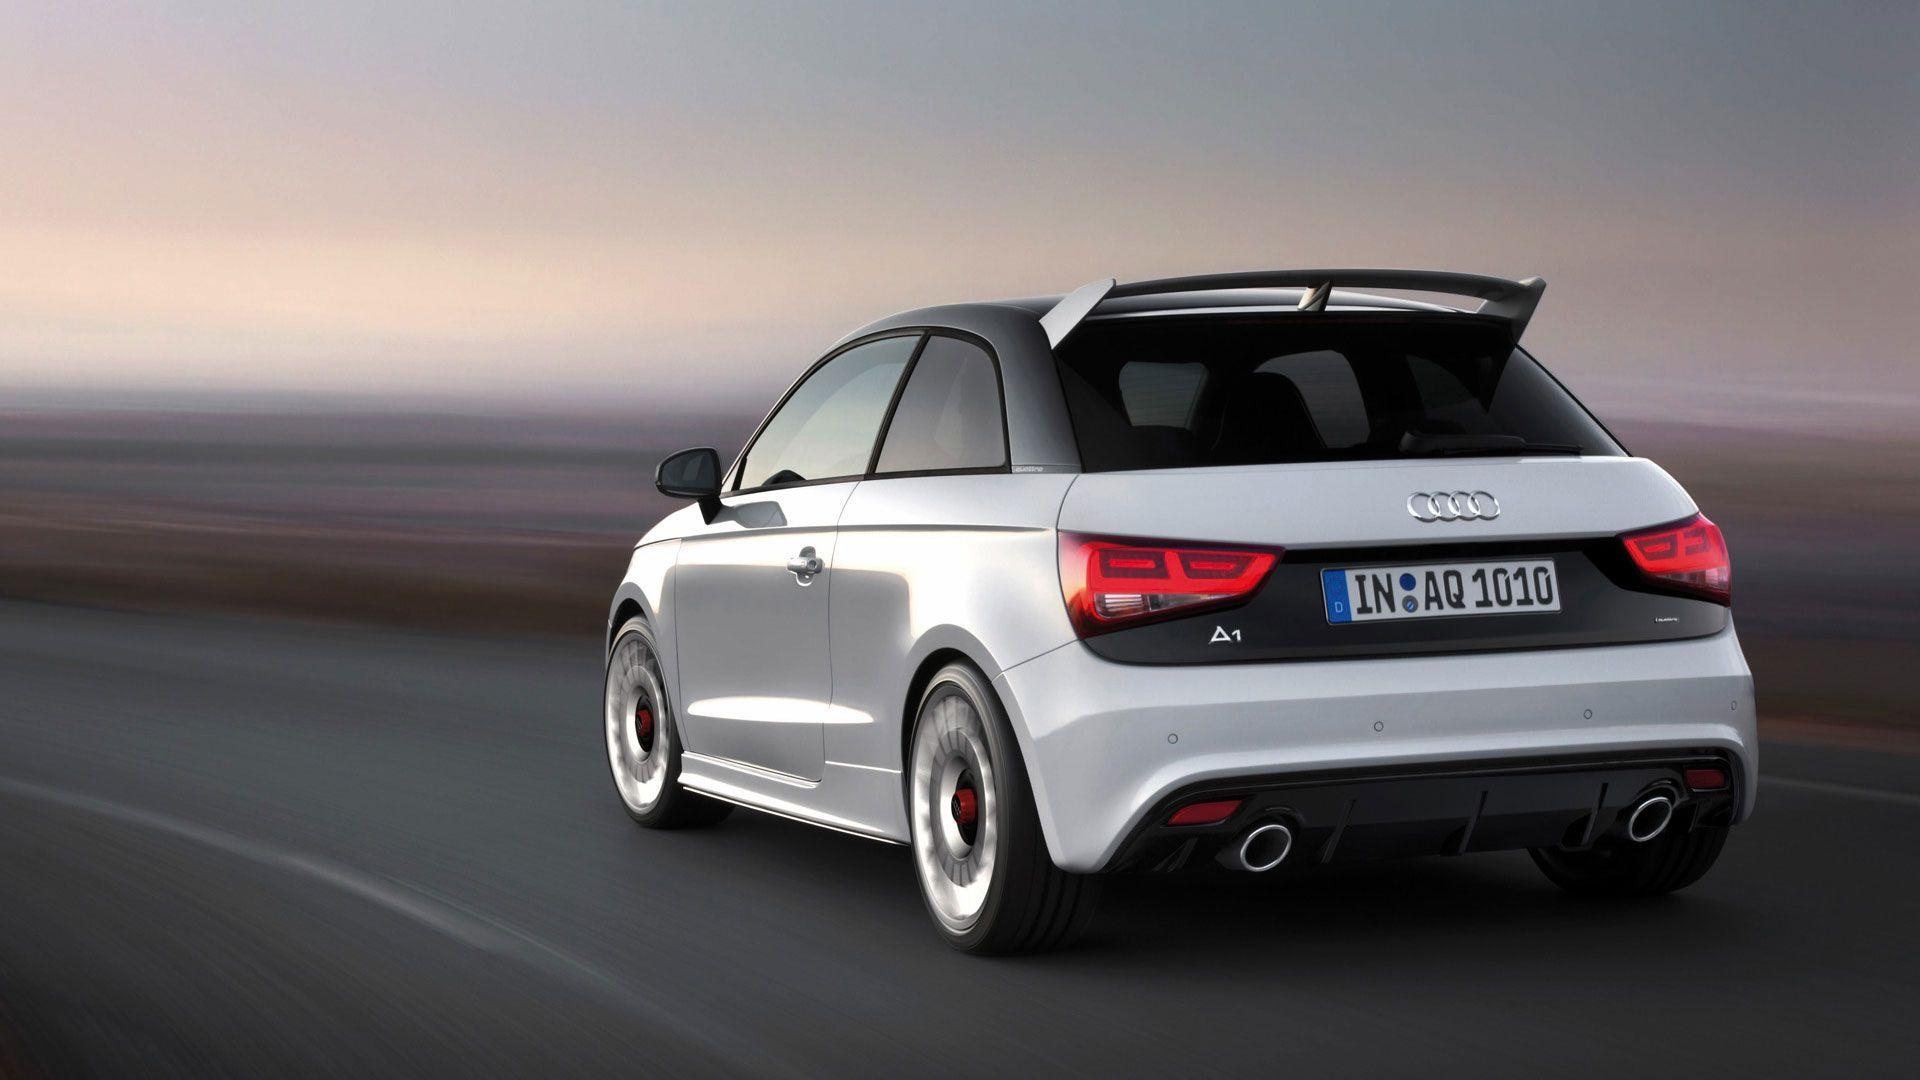 Audi A1 Wallpapers Wallpaper Cave